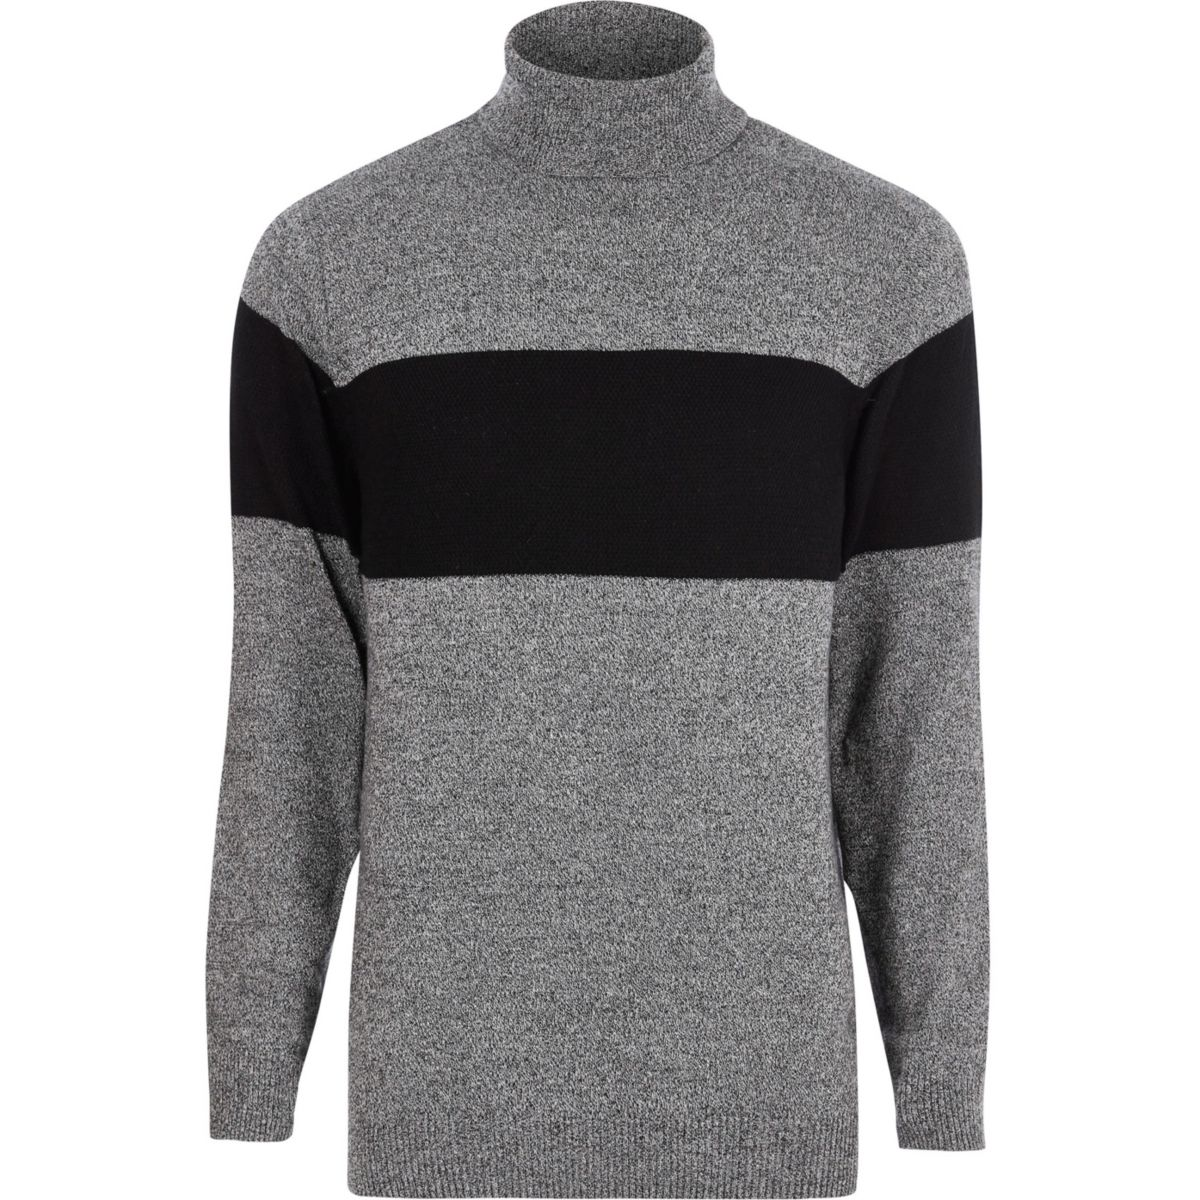 Grey block stripe roll neck knit sweater